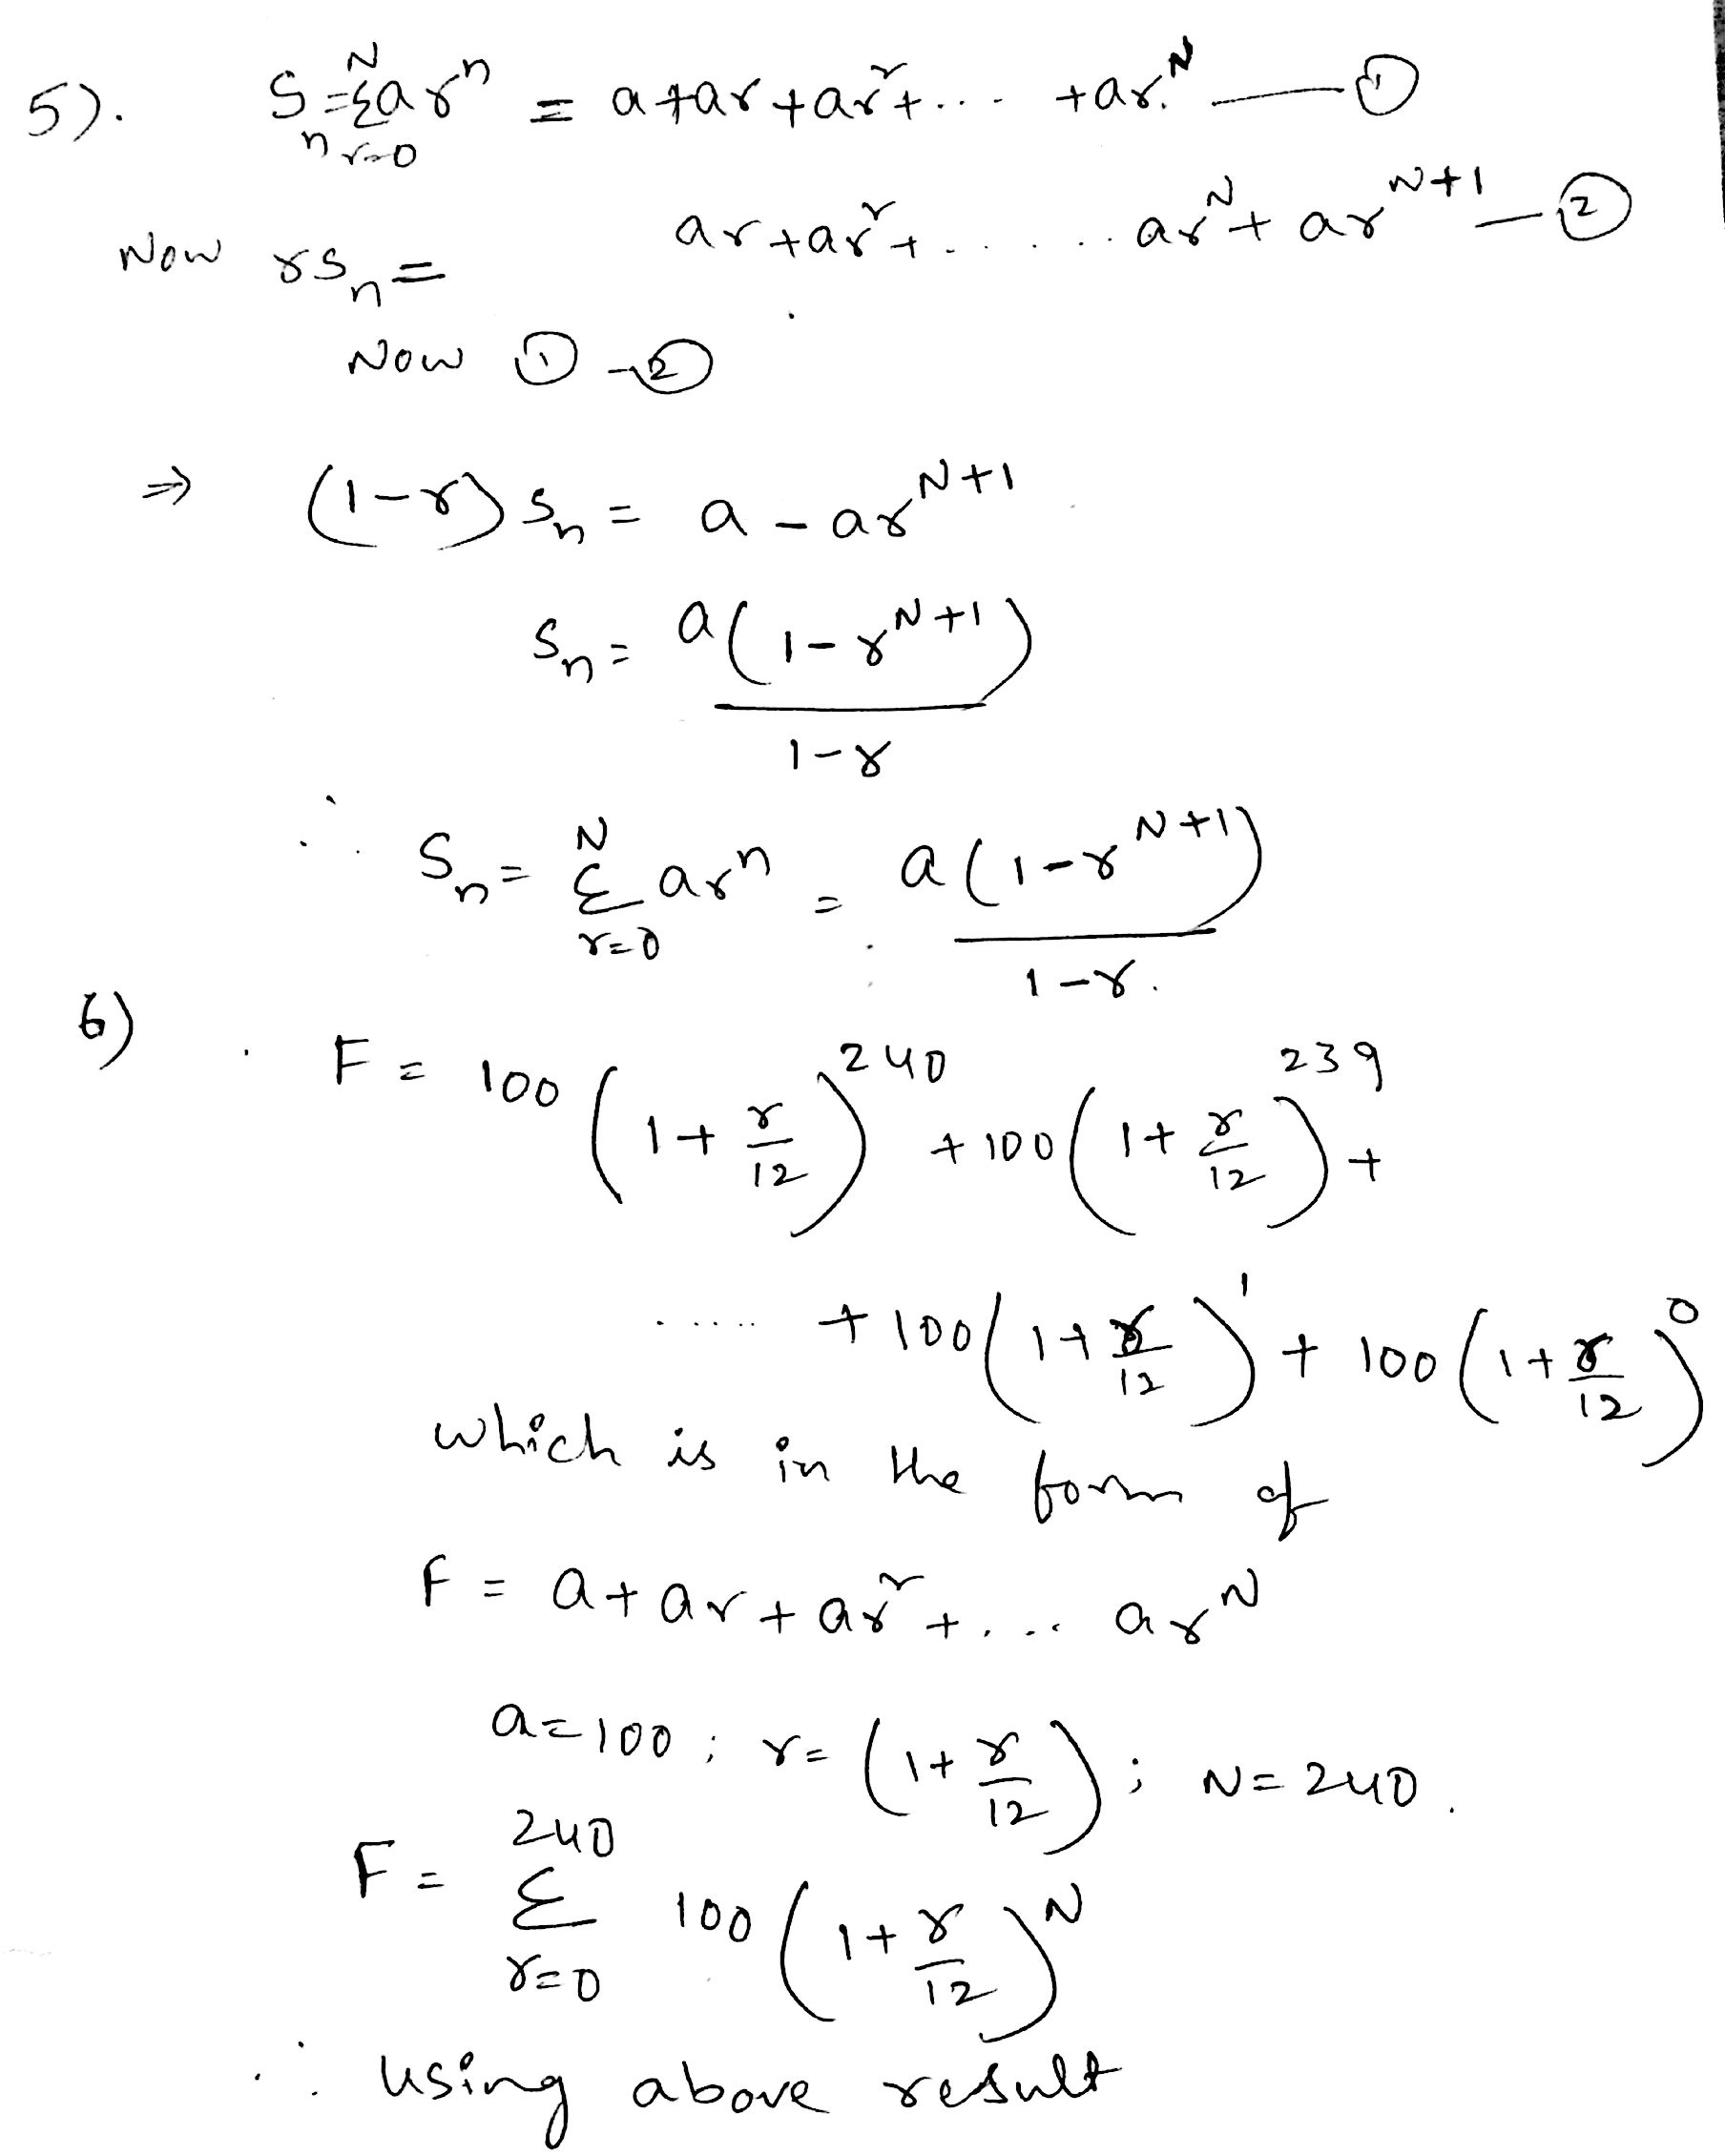 solved geometric sums i have solved problem 5 it is jus Geometric System Equation now n n 1 2 3 12 2 40